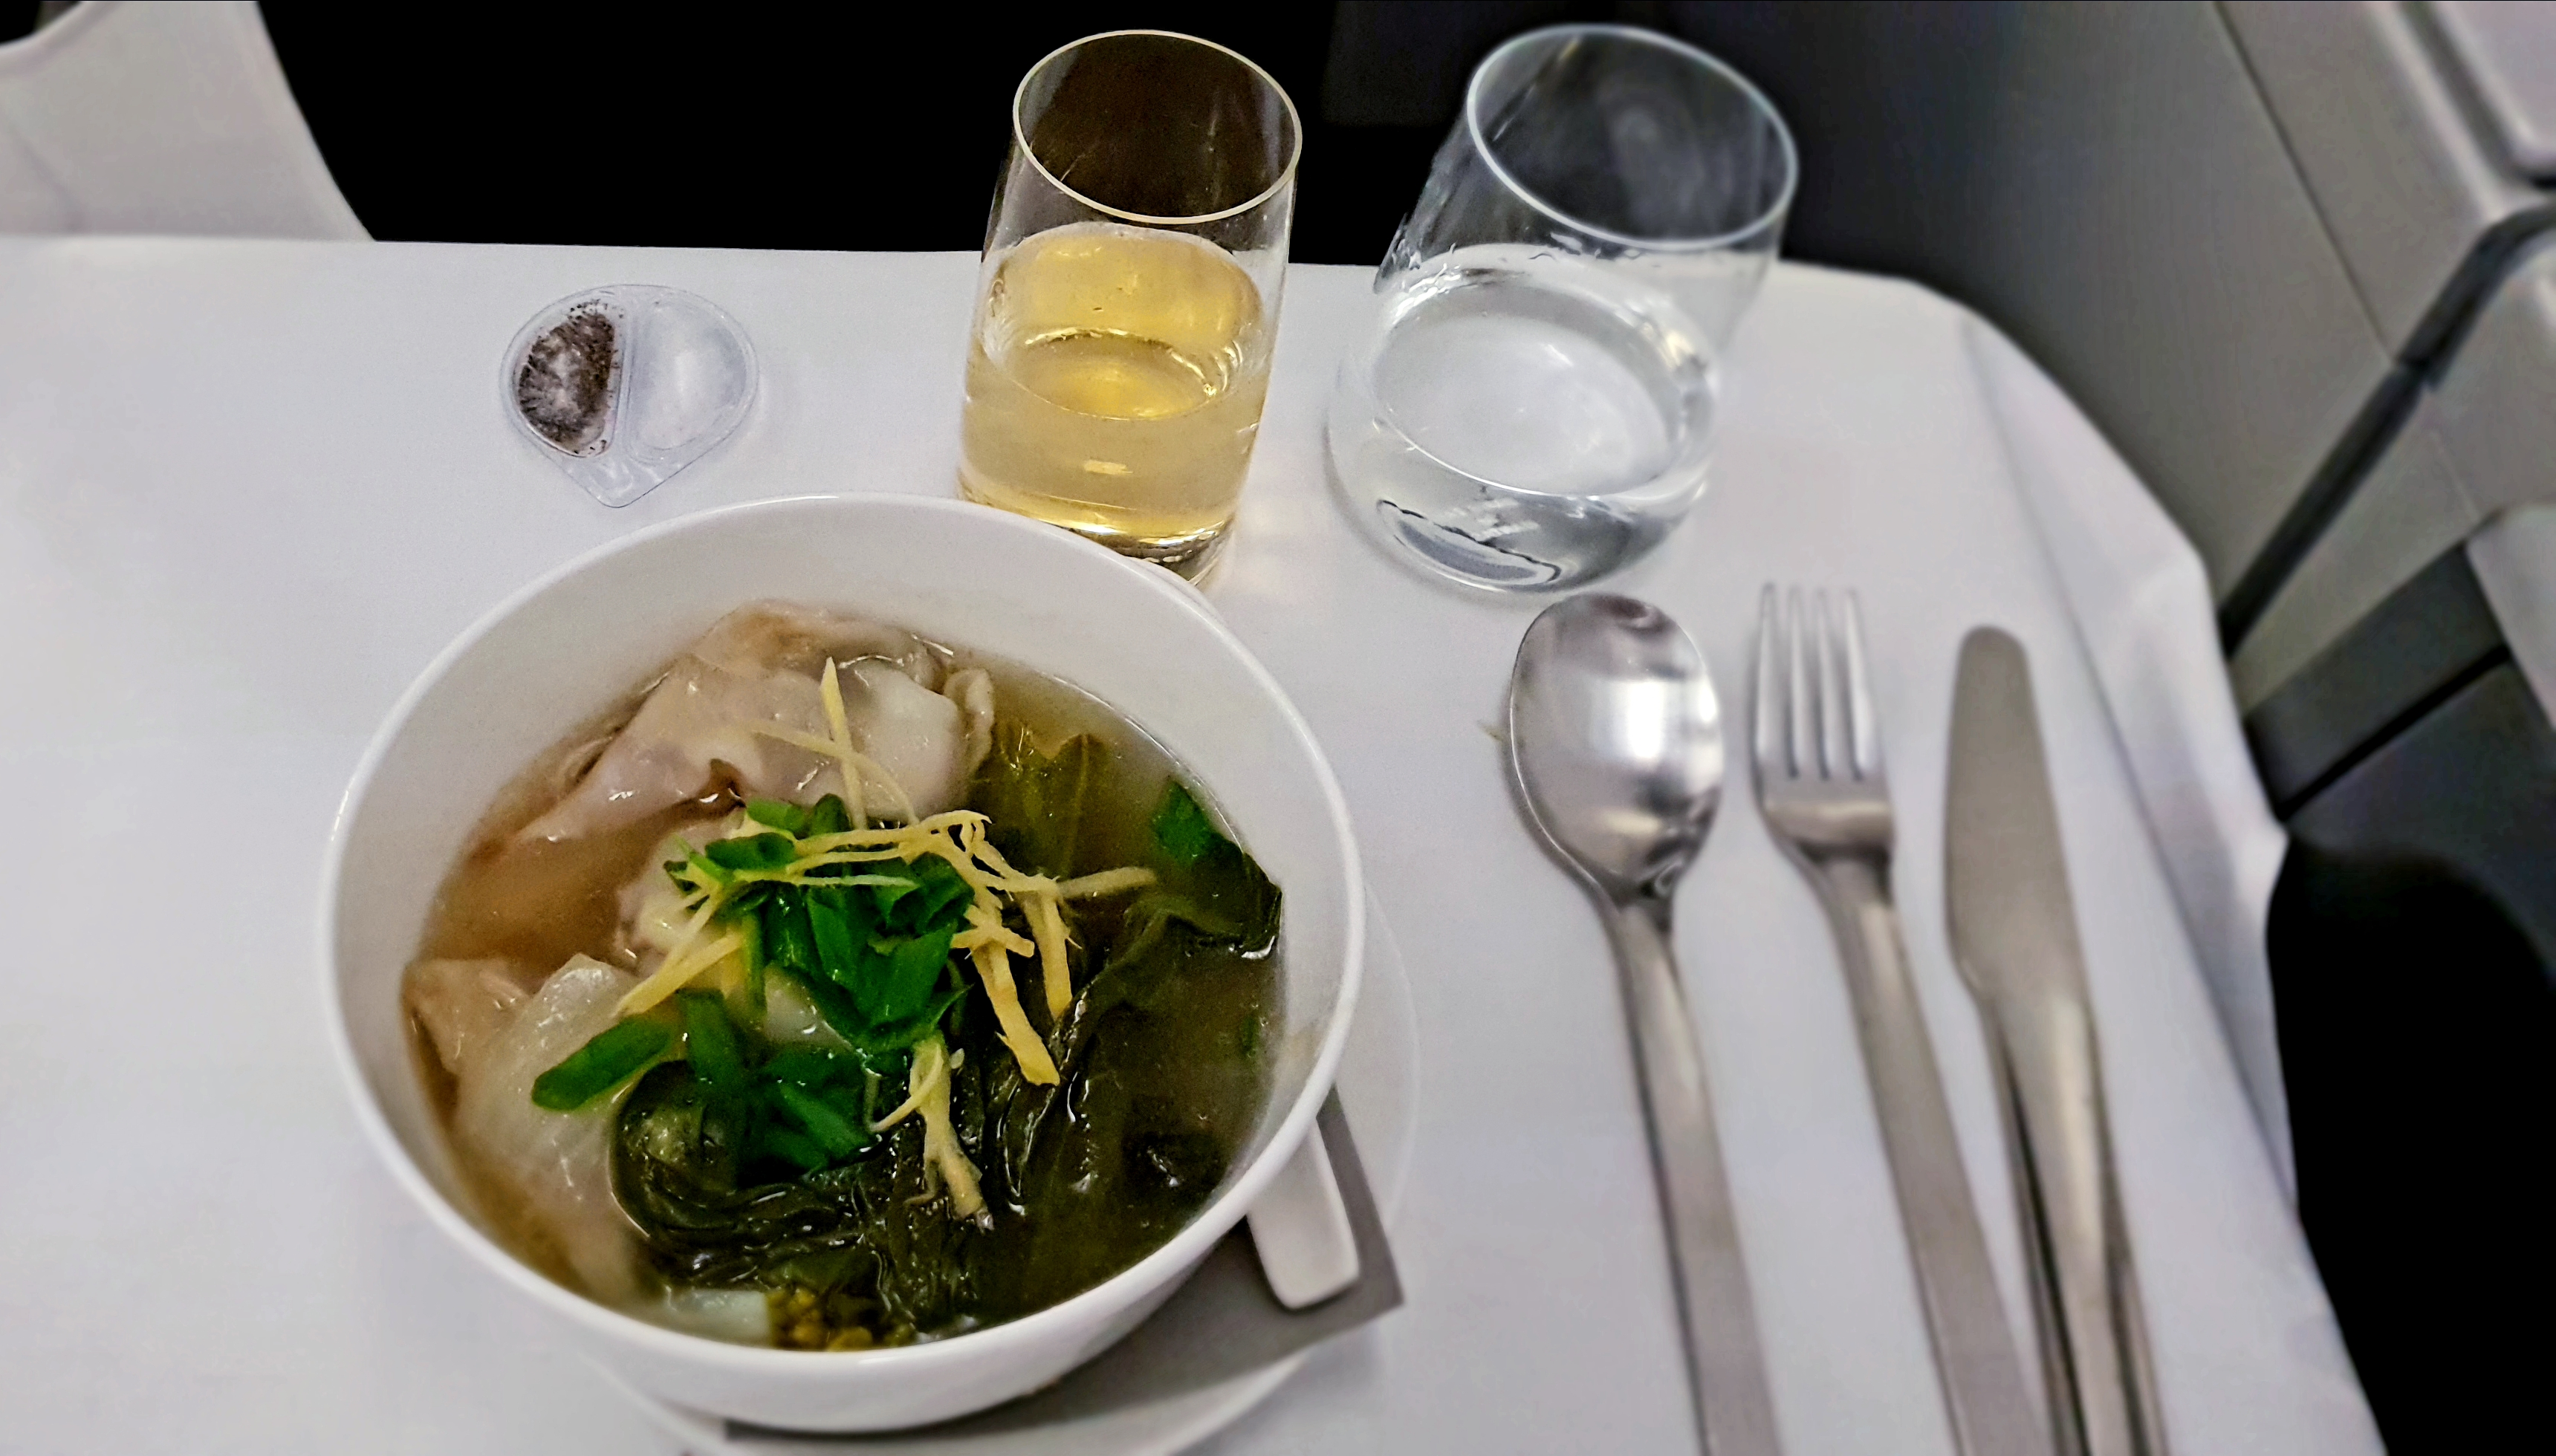 Qantas Airplane Food